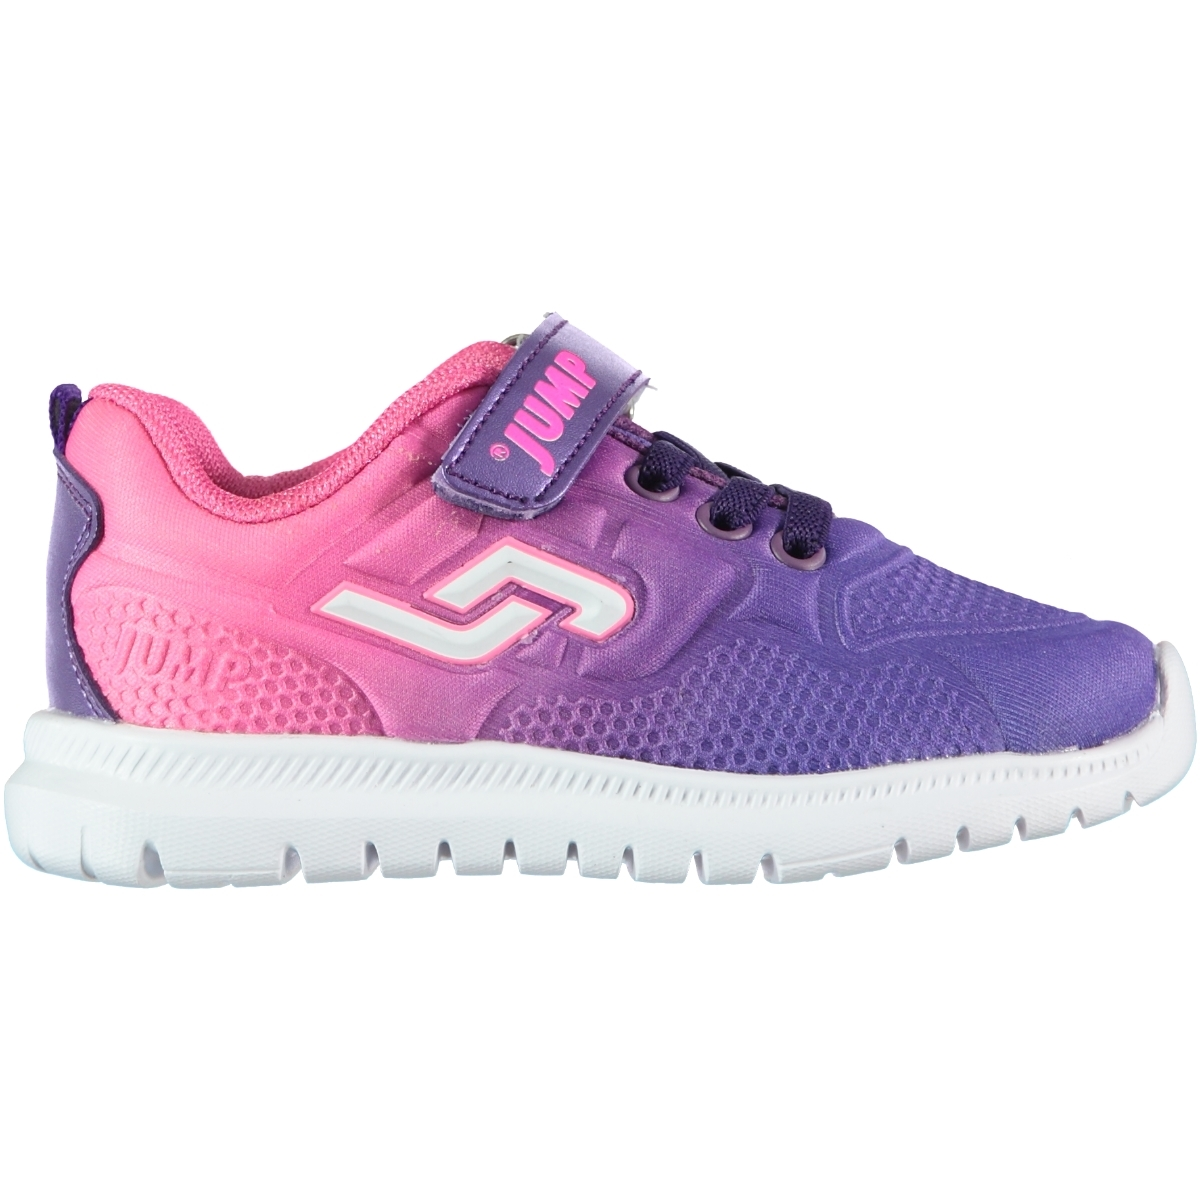 Jump 26 -30 Number Of Children's Sports Shoes Purple